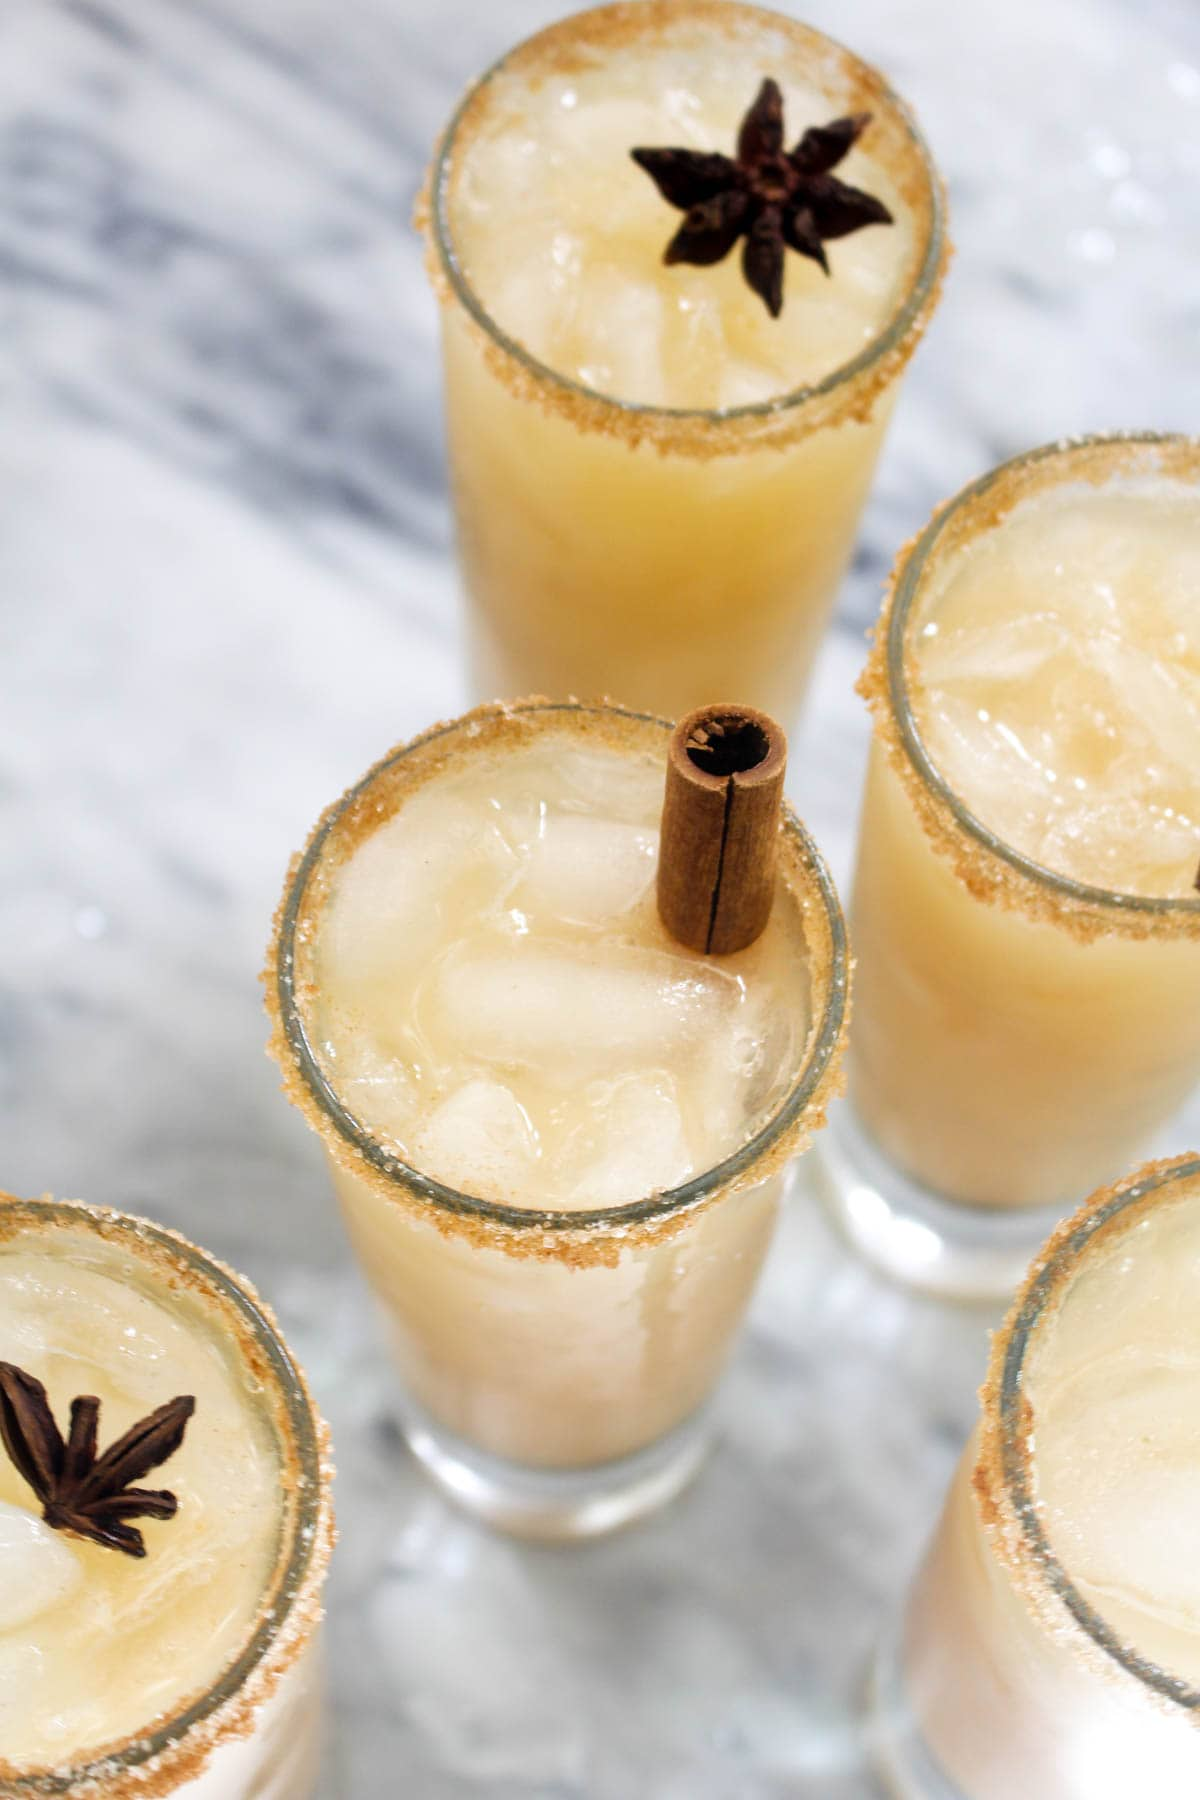 This Spiked Caramel Apple Cider Cocktail tastes like a caramel apple on a stick, but with a splash of rum for good measure! A homemade no-cook caramel sauce, made of dates, coconut milk, and spices, adds a real kick of Fall flavor! | CatchingSeeds.com